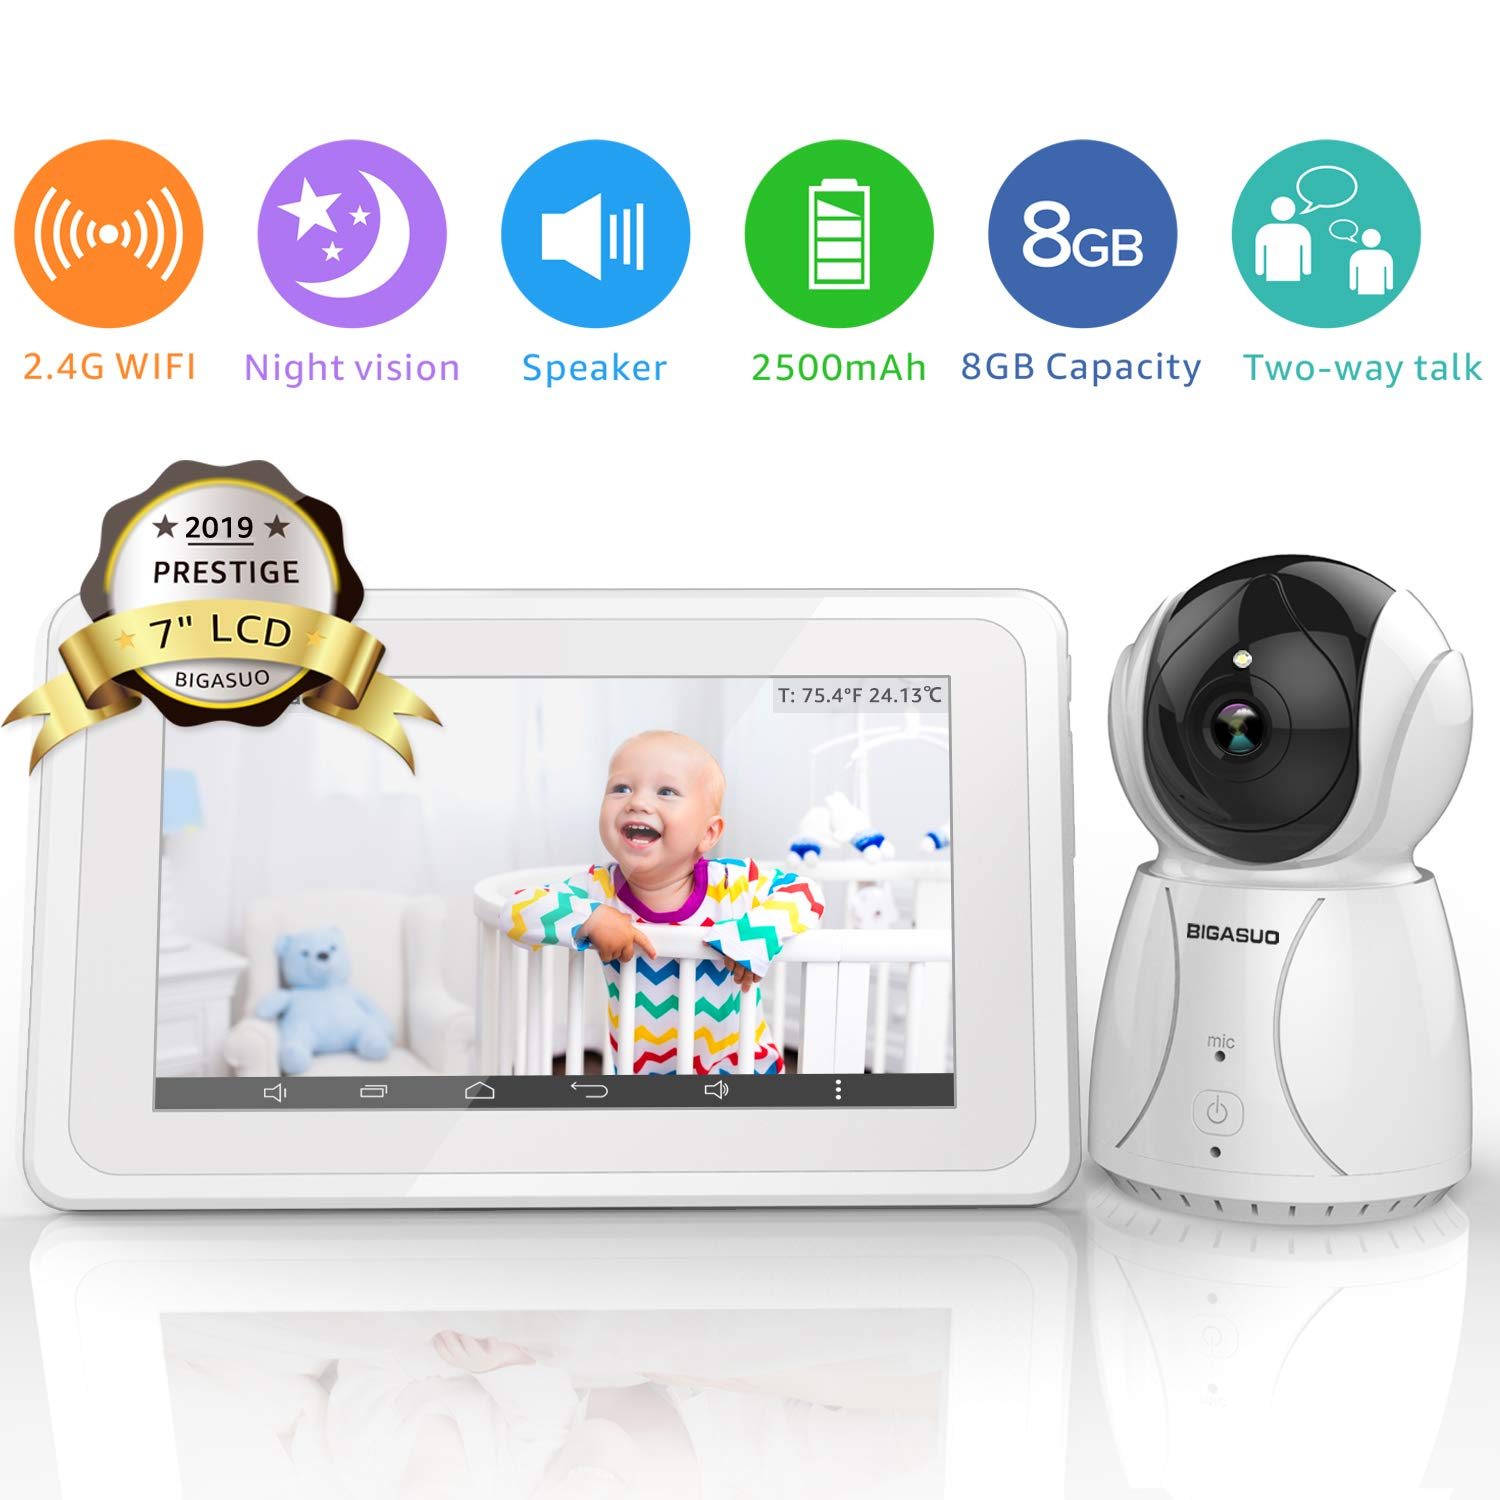 BIGASUO Upgrade Baby Monitor, Video Baby Monitor 7'' Large LCD Screen, Baby Monitors with Camera and Audio Night Vision, Support Multi Camera, Two Way Talk Temperature Sensor, Built-in Lullabies